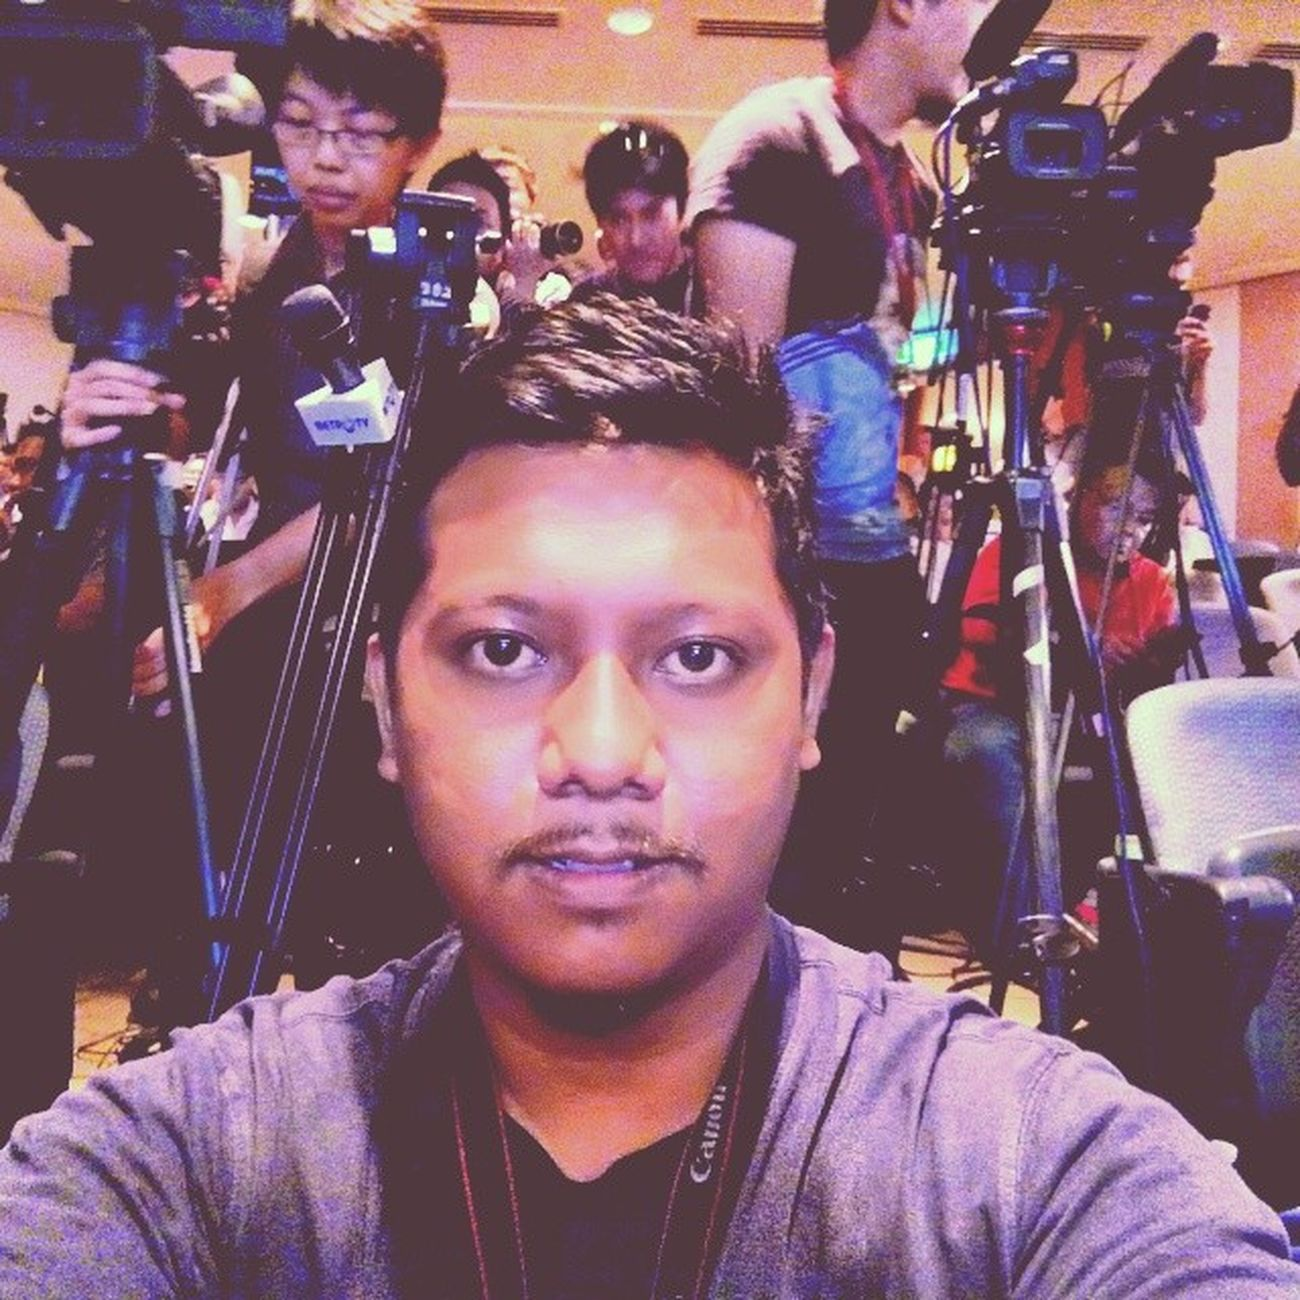 Waiting for press conference of MAS MH370 at KLIA. MH370 PrayforMH370 Pray4mh370 Press